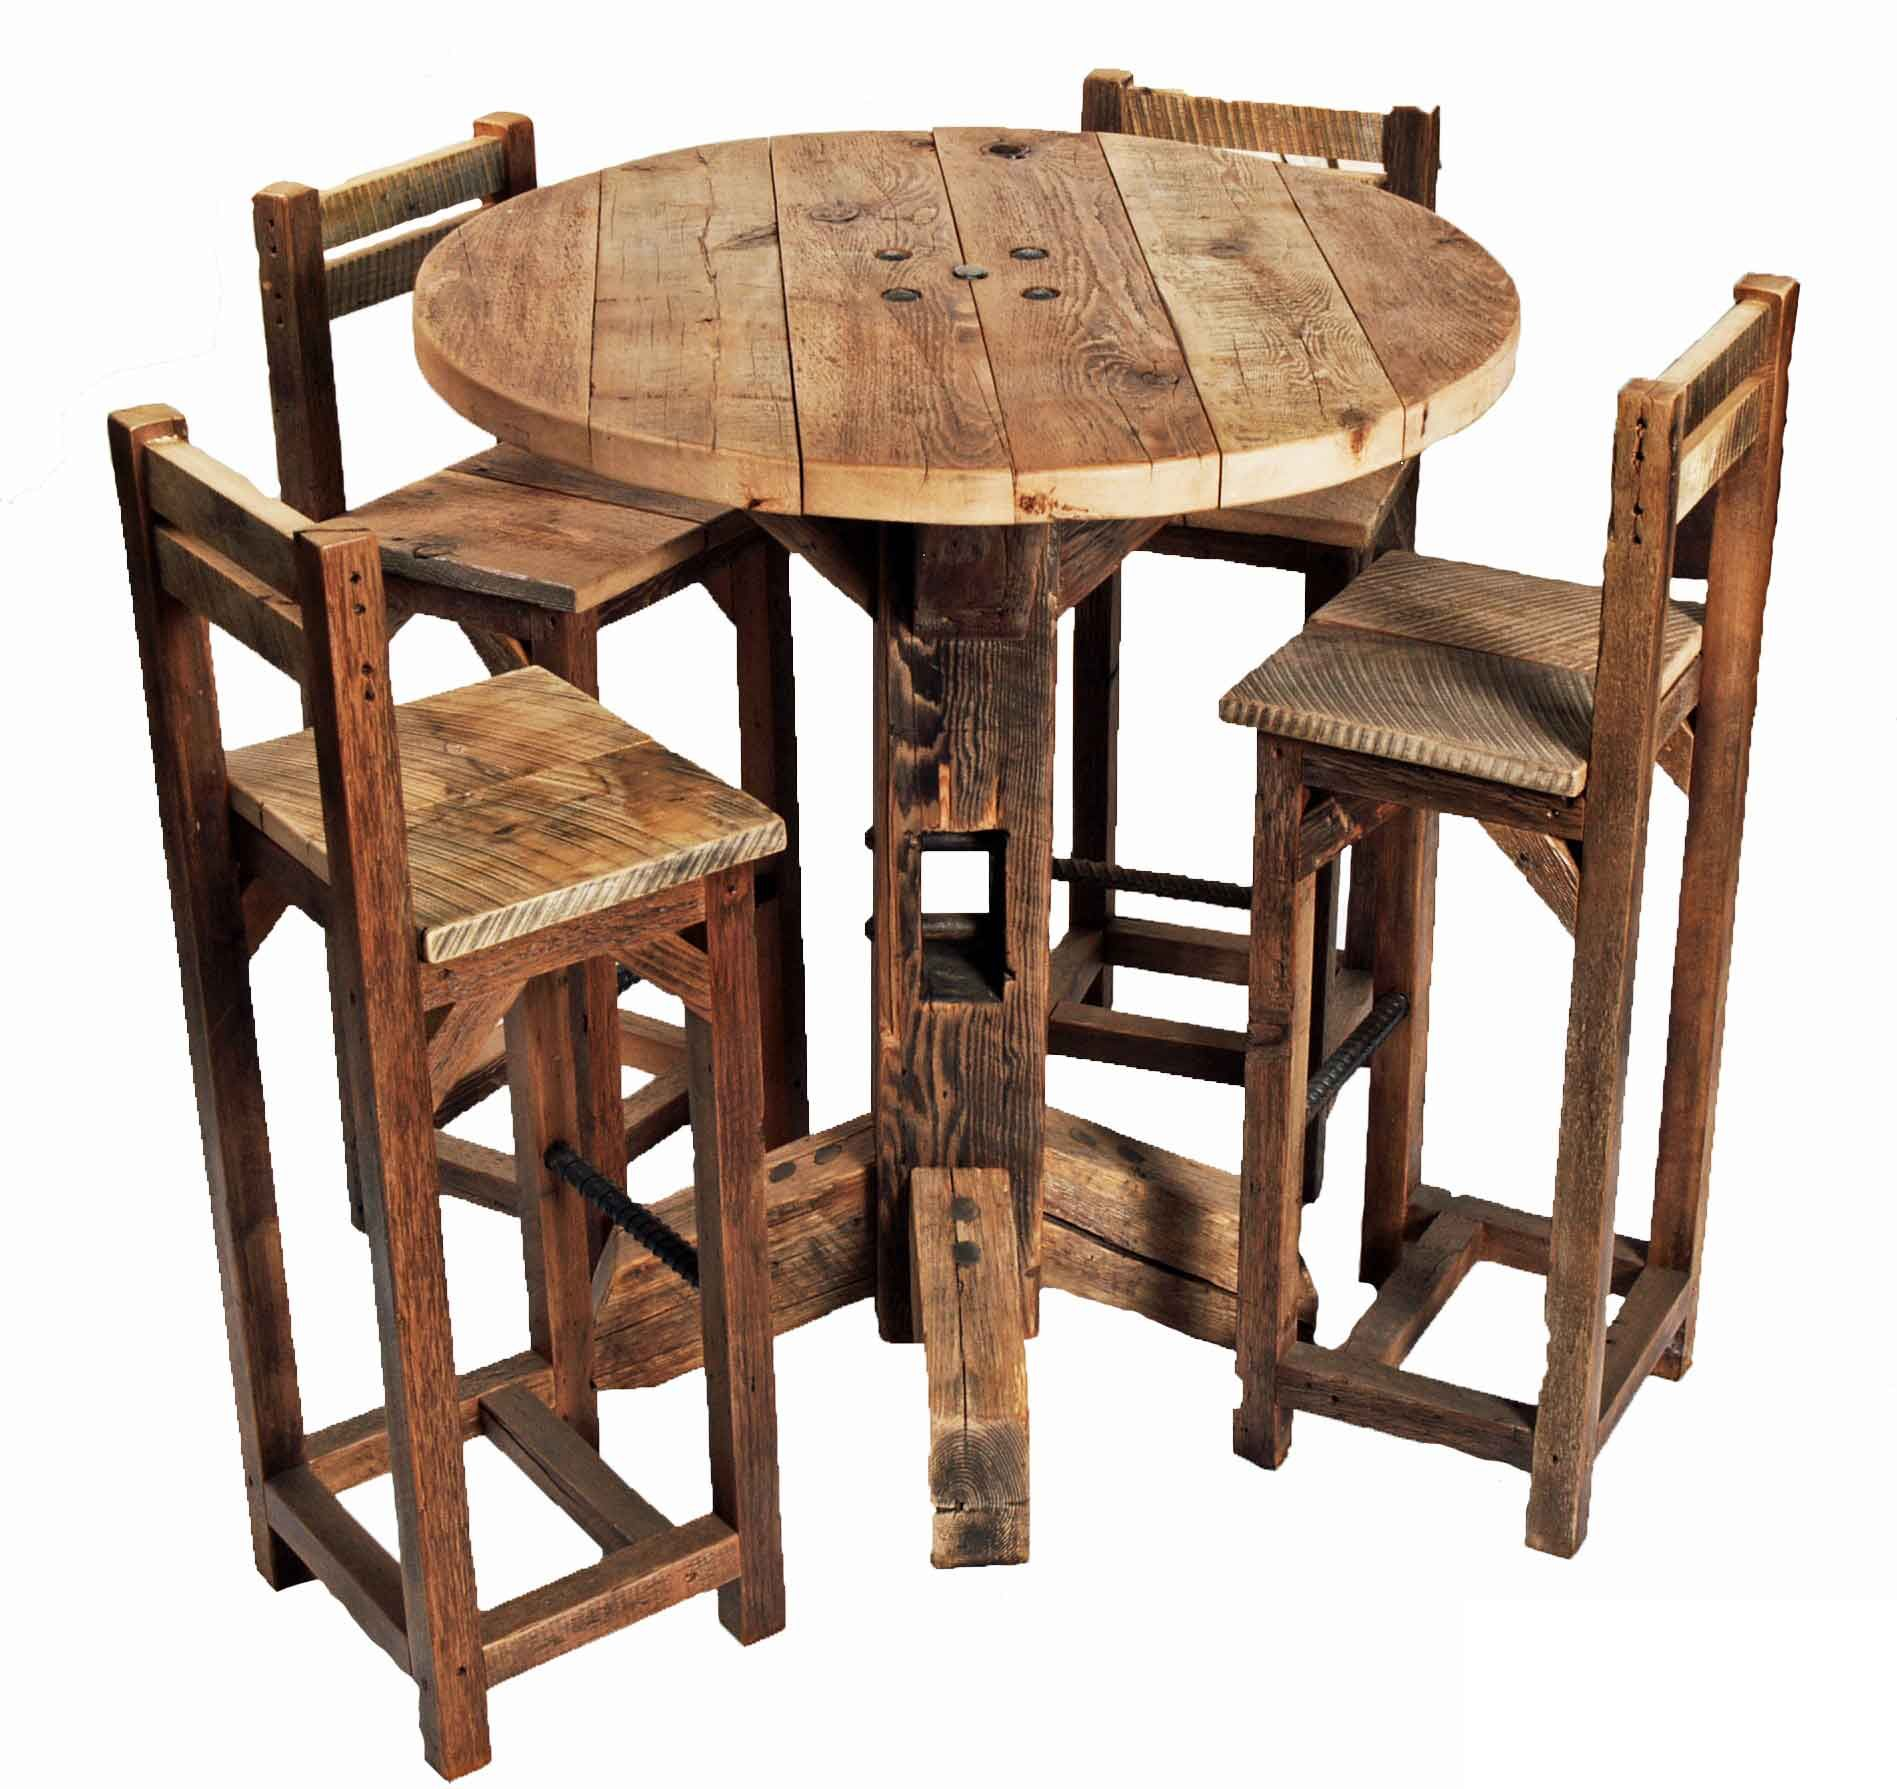 Rustic Round Kitchen Table furniture, old rustic small high round top kitchen table and chair